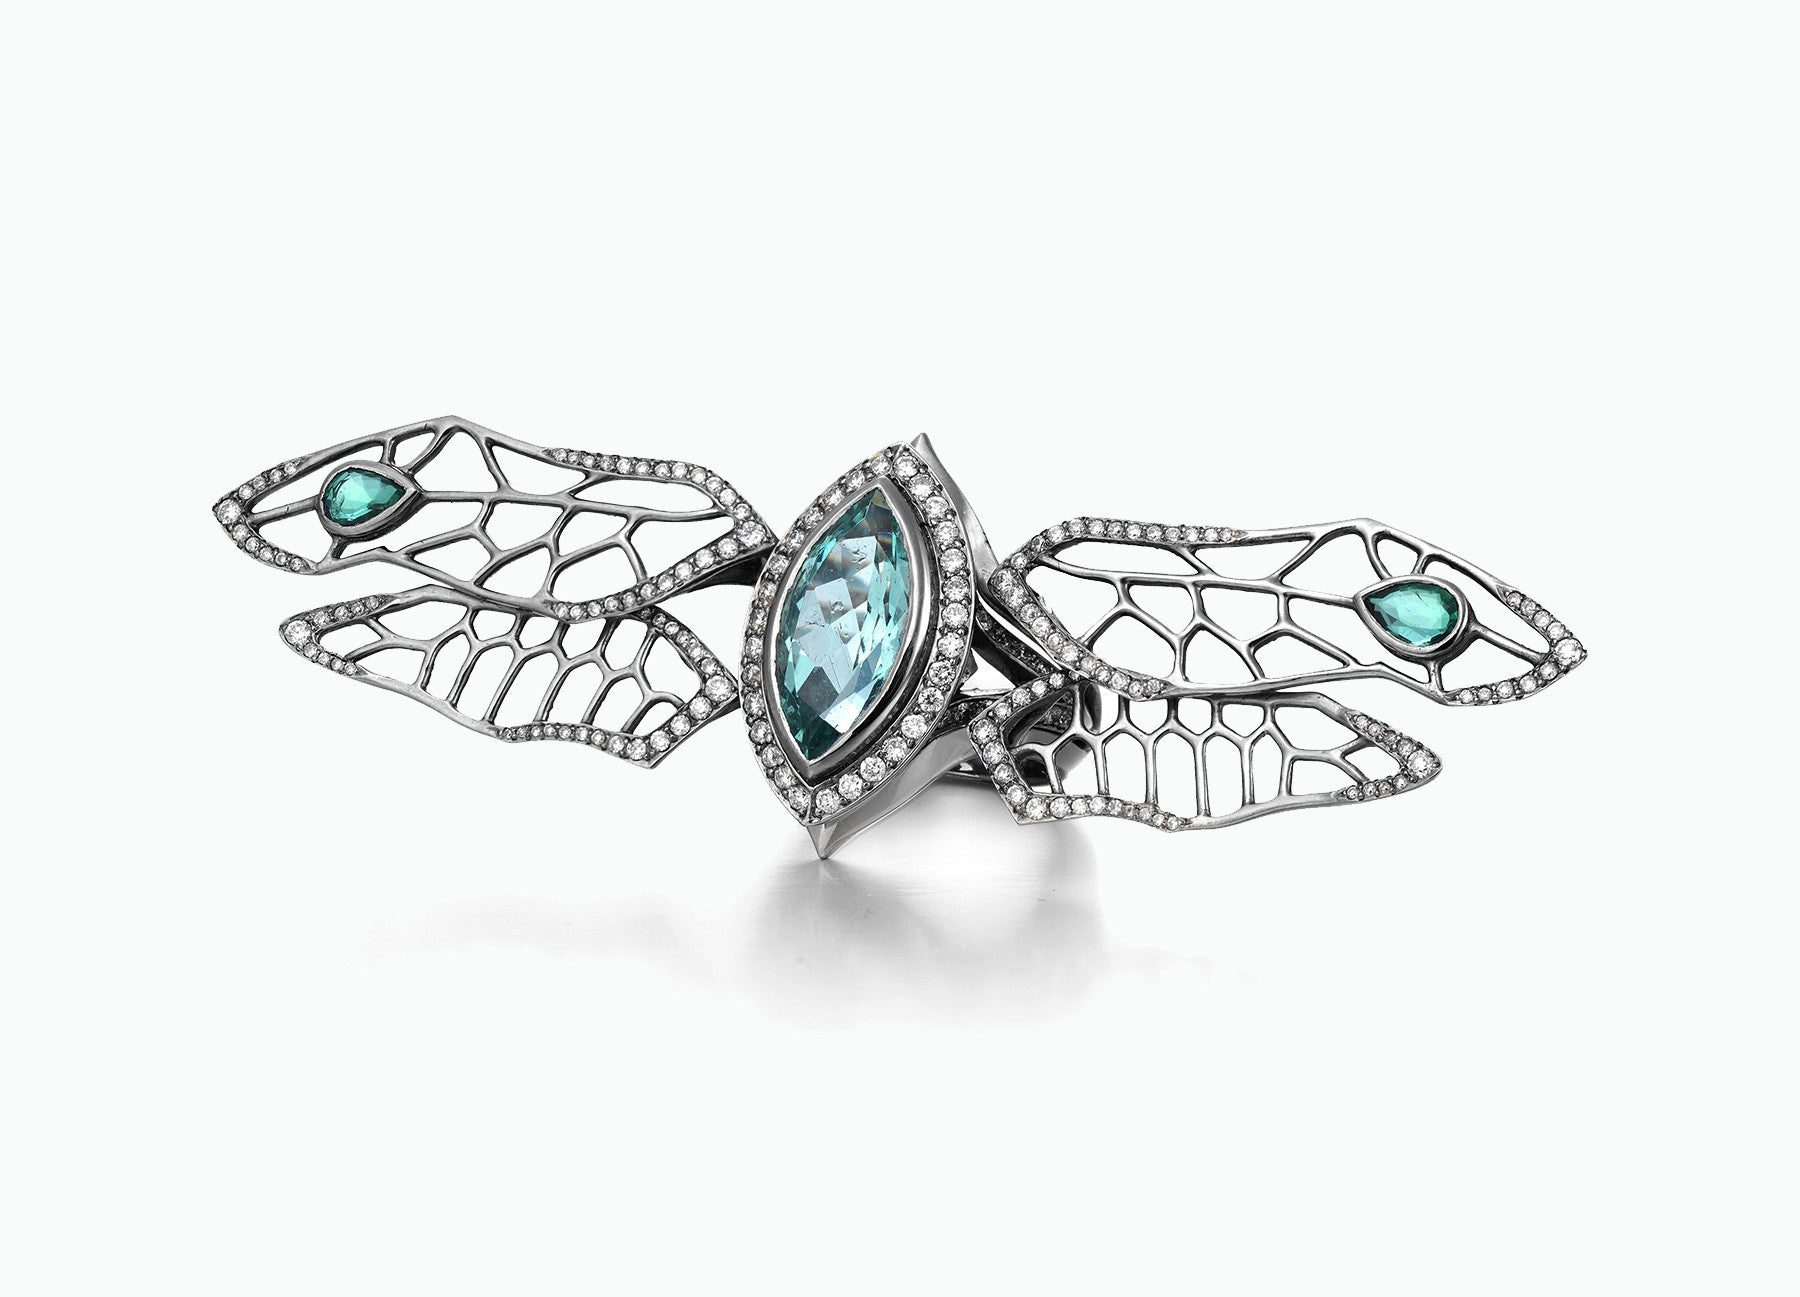 d teeny ring view dragonfly a diamond larger image rings tiny engagement